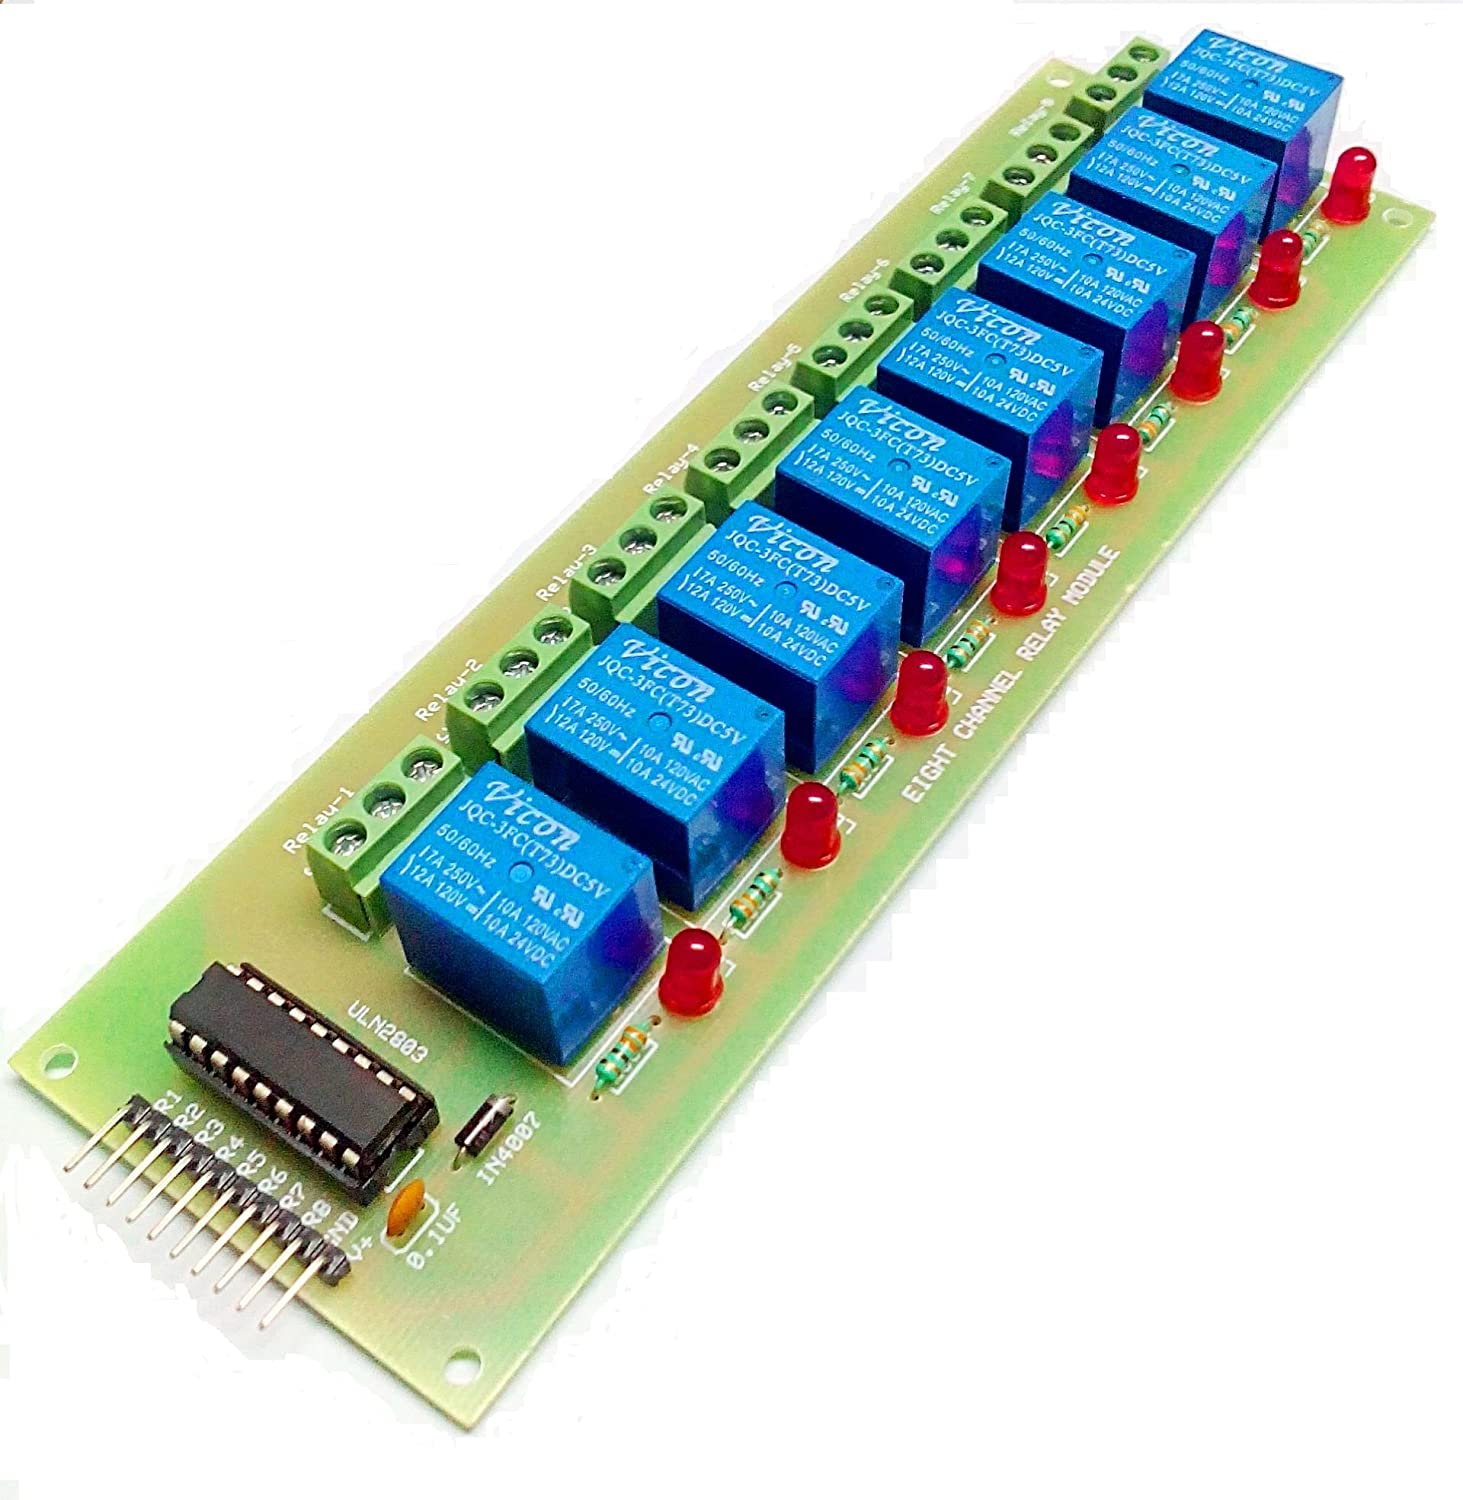 33v) For Arduino,avr,pic & 8051 To Control 8 Ac Appliances From